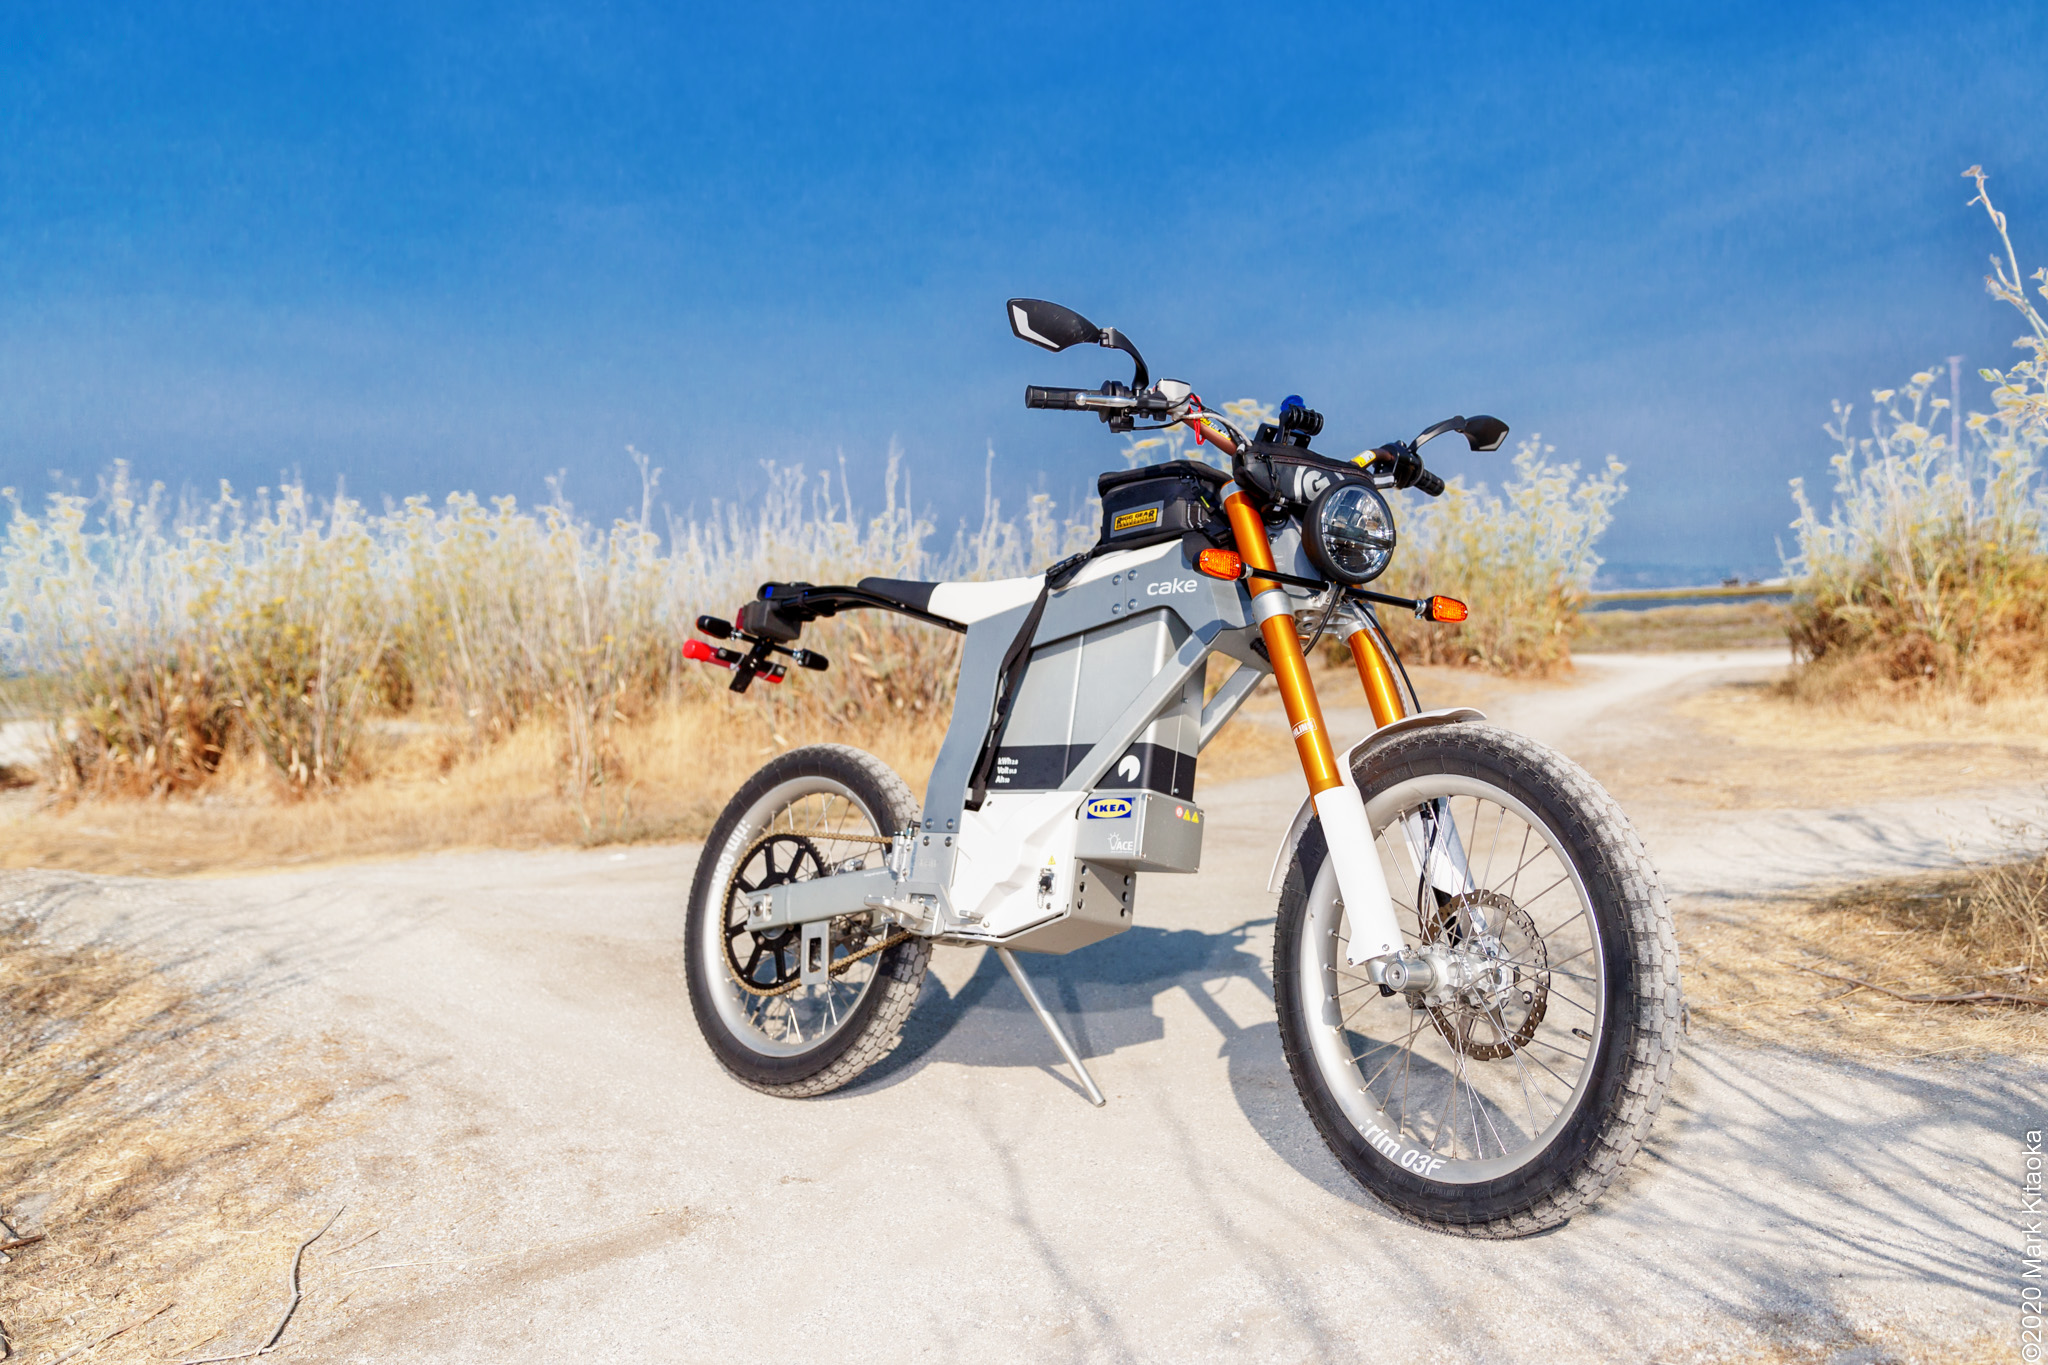 Kalk motorcycle on off road path